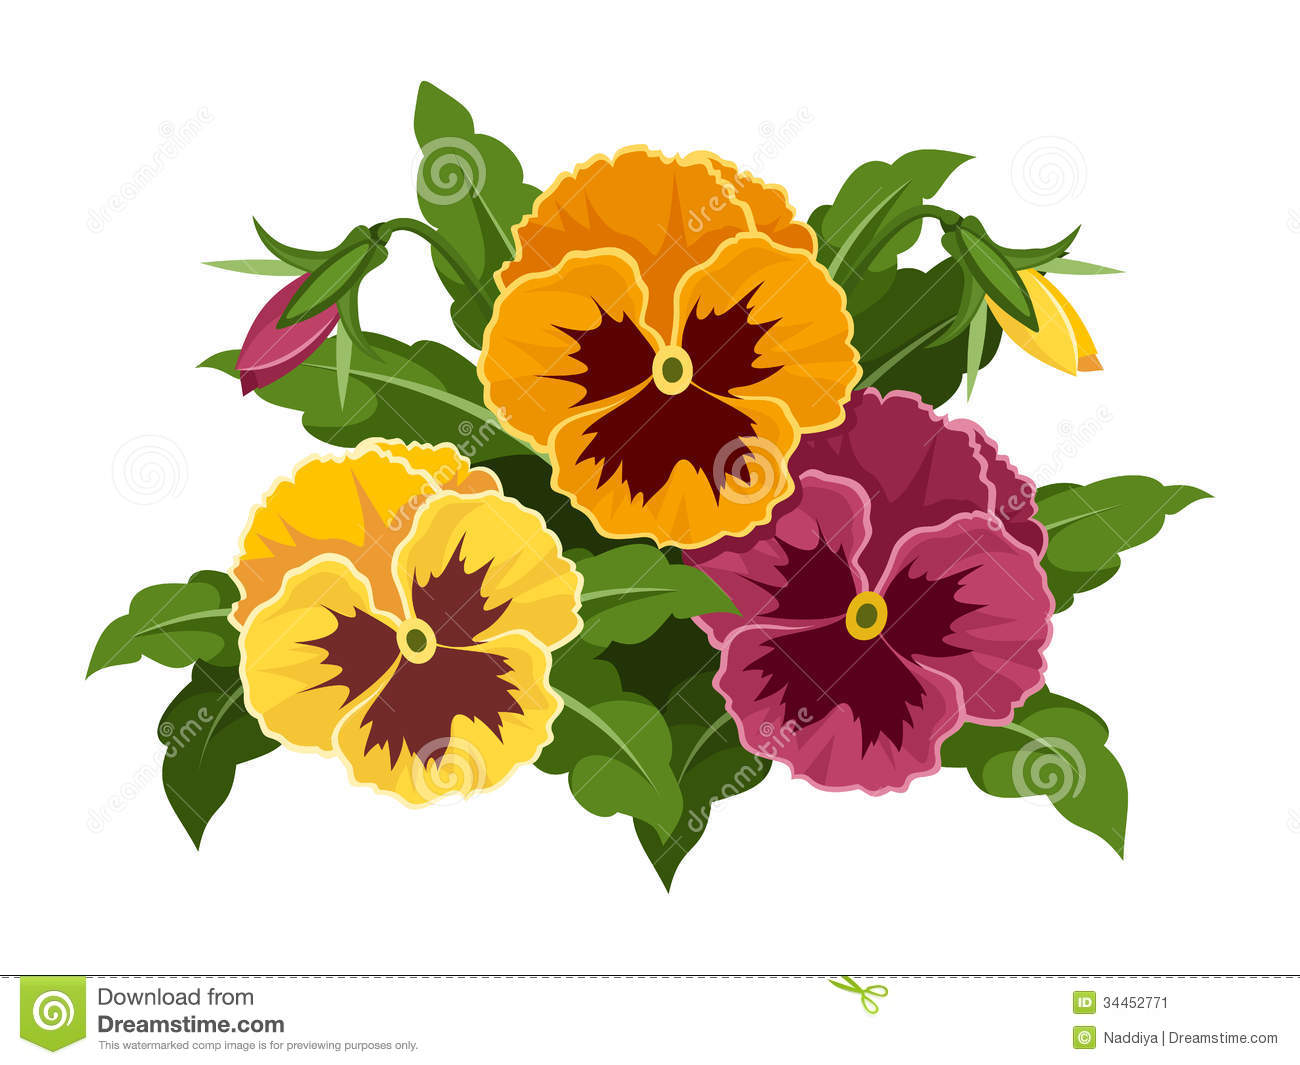 Pansy Flowers. Stock Image.